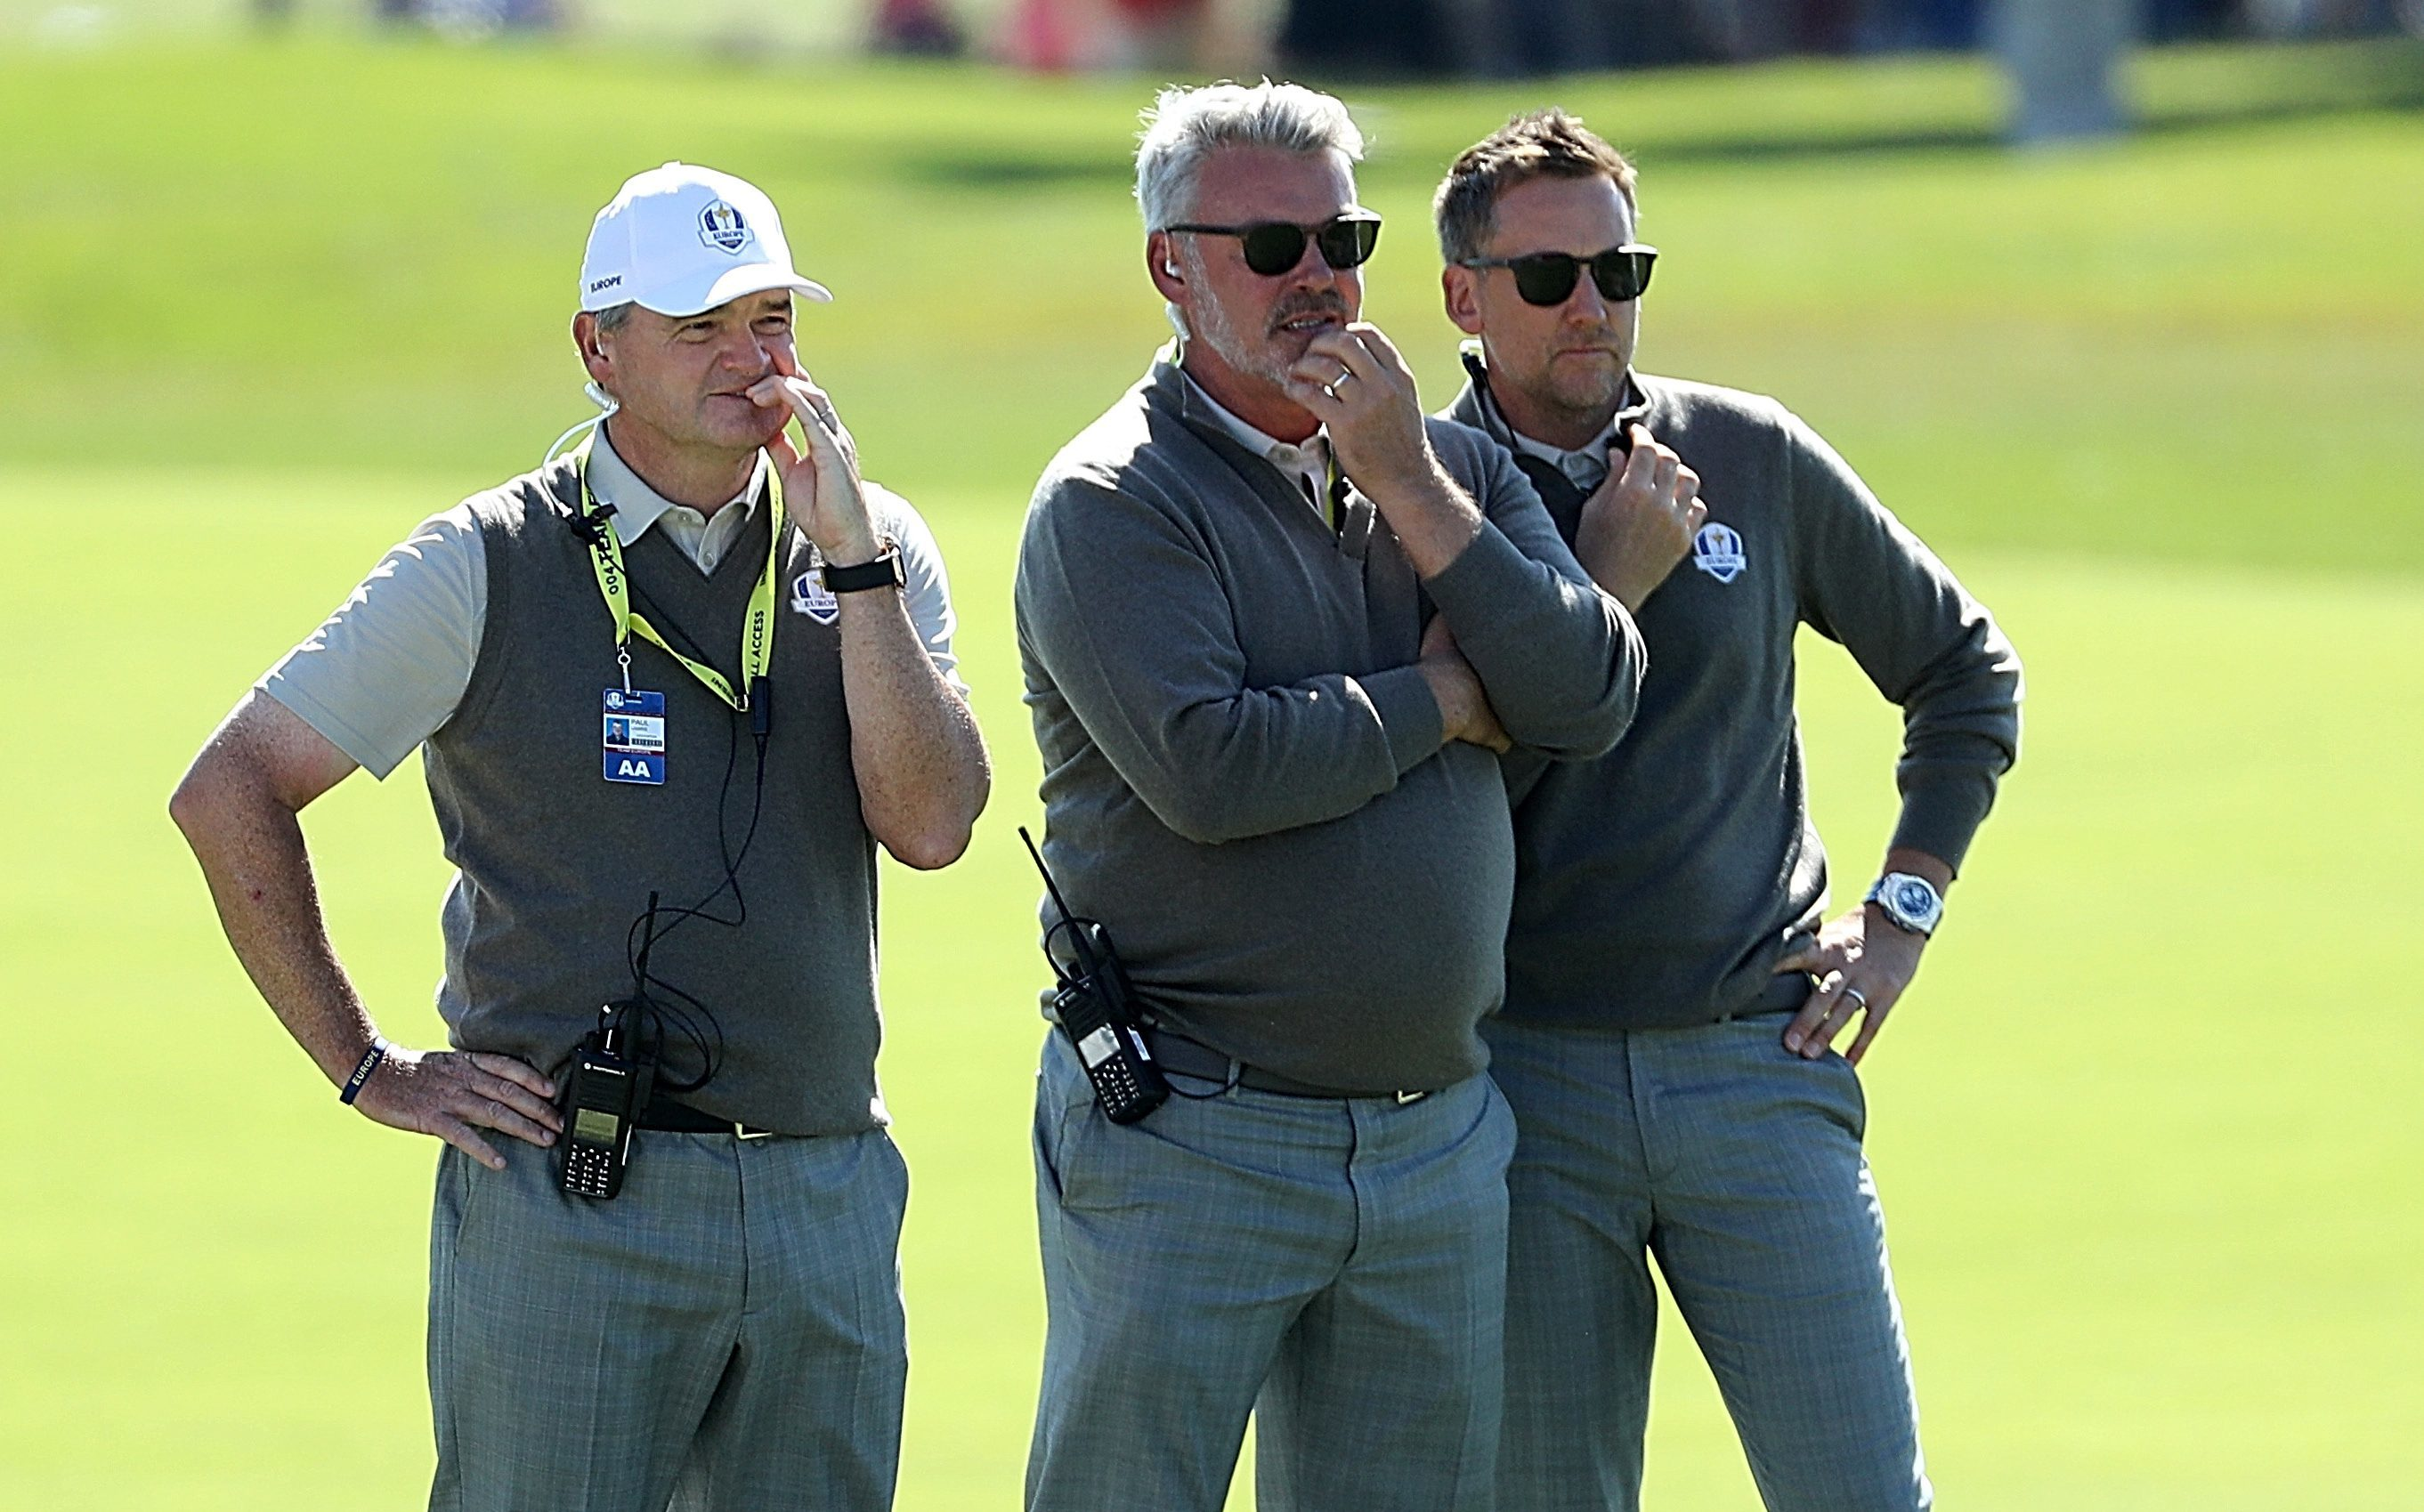 Darren Clarke (centre) with vice-captains Paul Lawrie and Ian Poulter at Hazeltine.